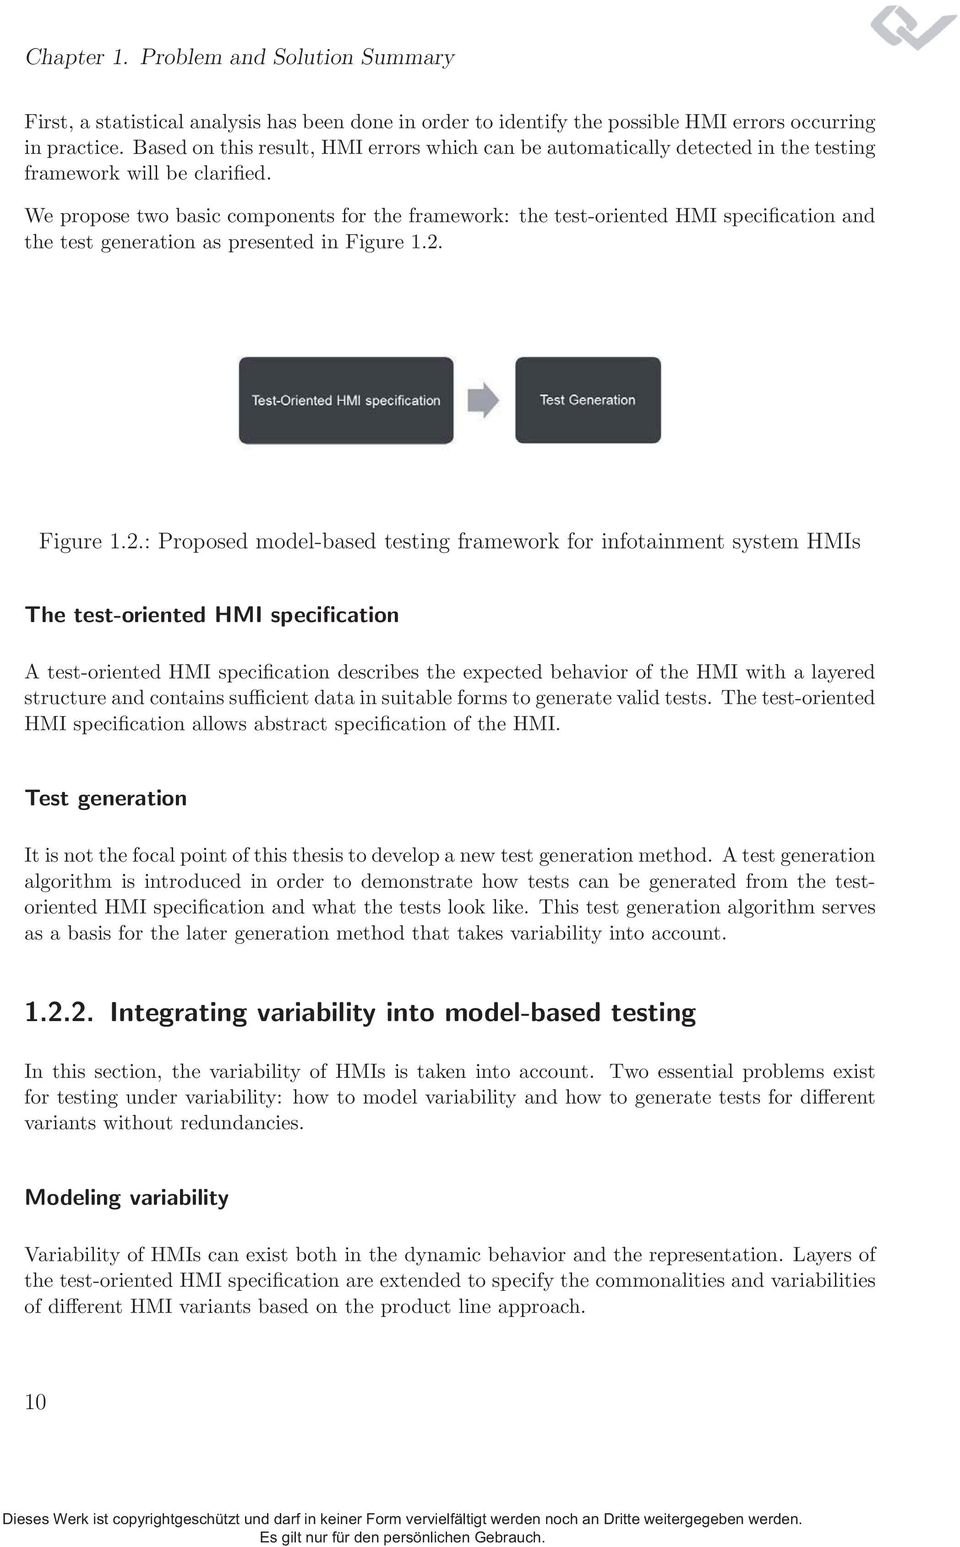 We propose two basic components for the framework: the test-oriented HMI specification and the test generation as presented in Figure 1.2.